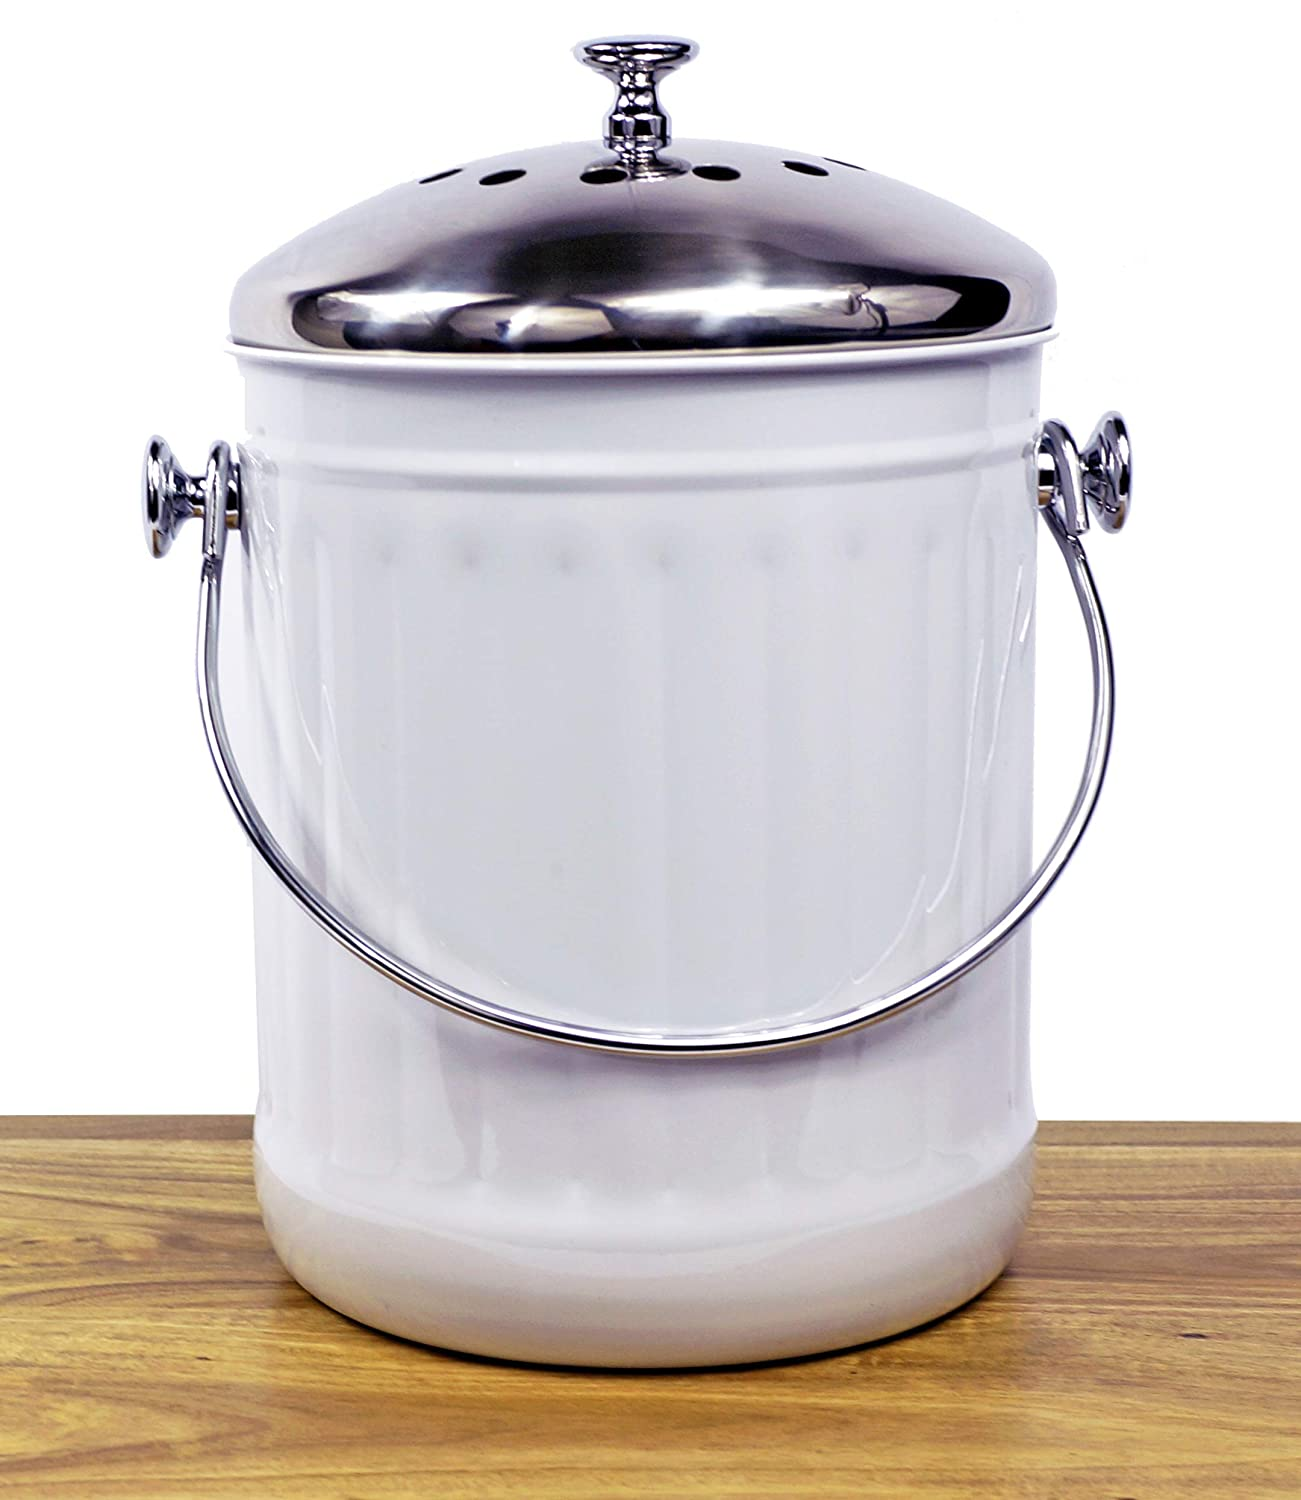 +Sale+ Indoor Kitchen Stainless Steel Compost Bin - White - 1.2 Gallon Container with Double Charcoal Filter for Odor Absorbing - Perfect Caddy for Any Counter Top - Non Stick Bucket for Easy Tossing Family Deco SYNCHKG080630